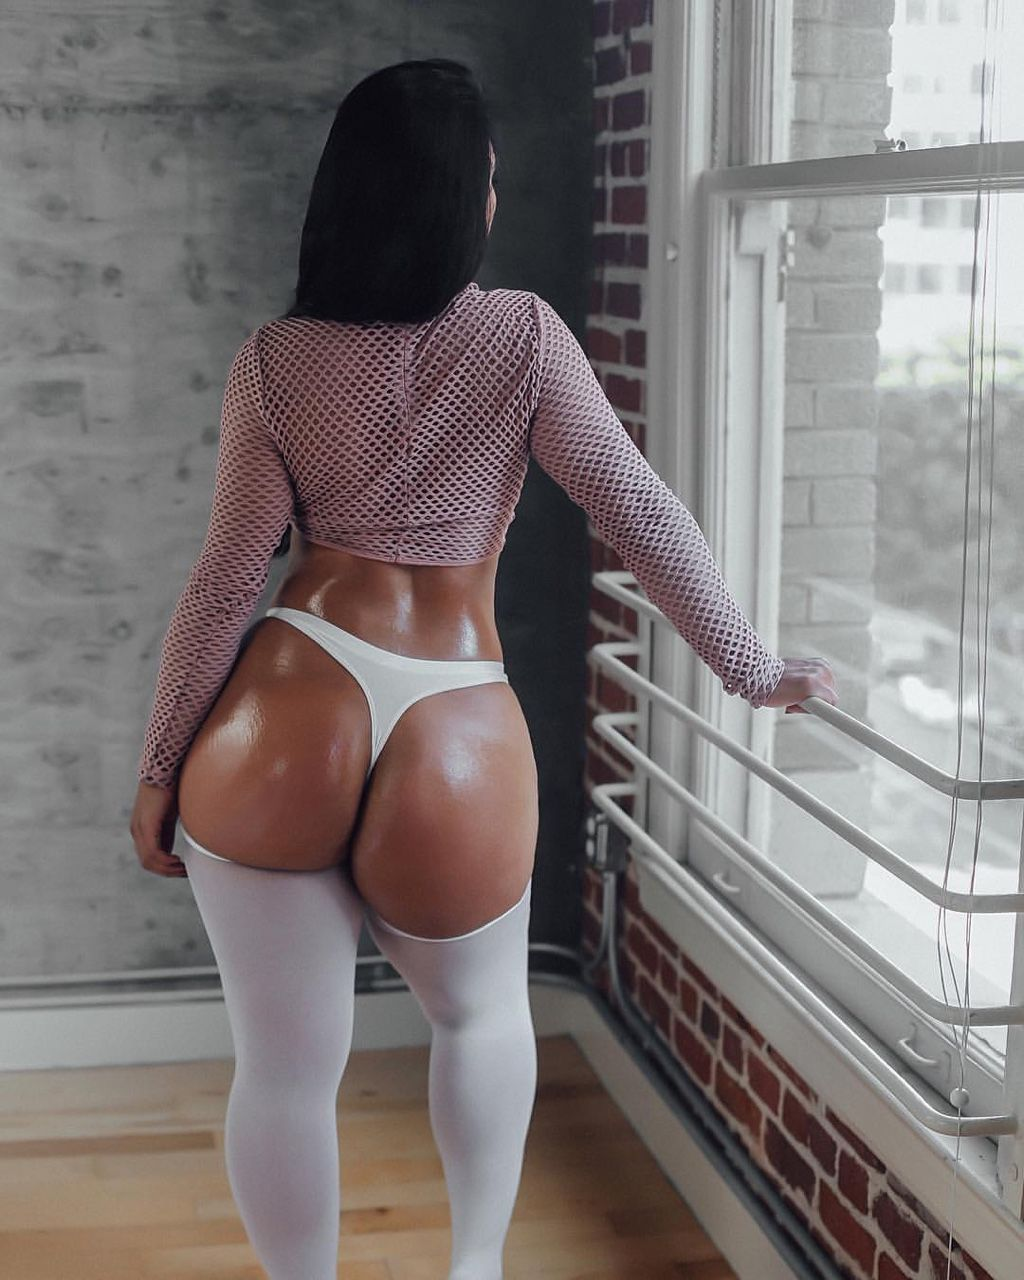 from Brodie thick latinas with big asses naked